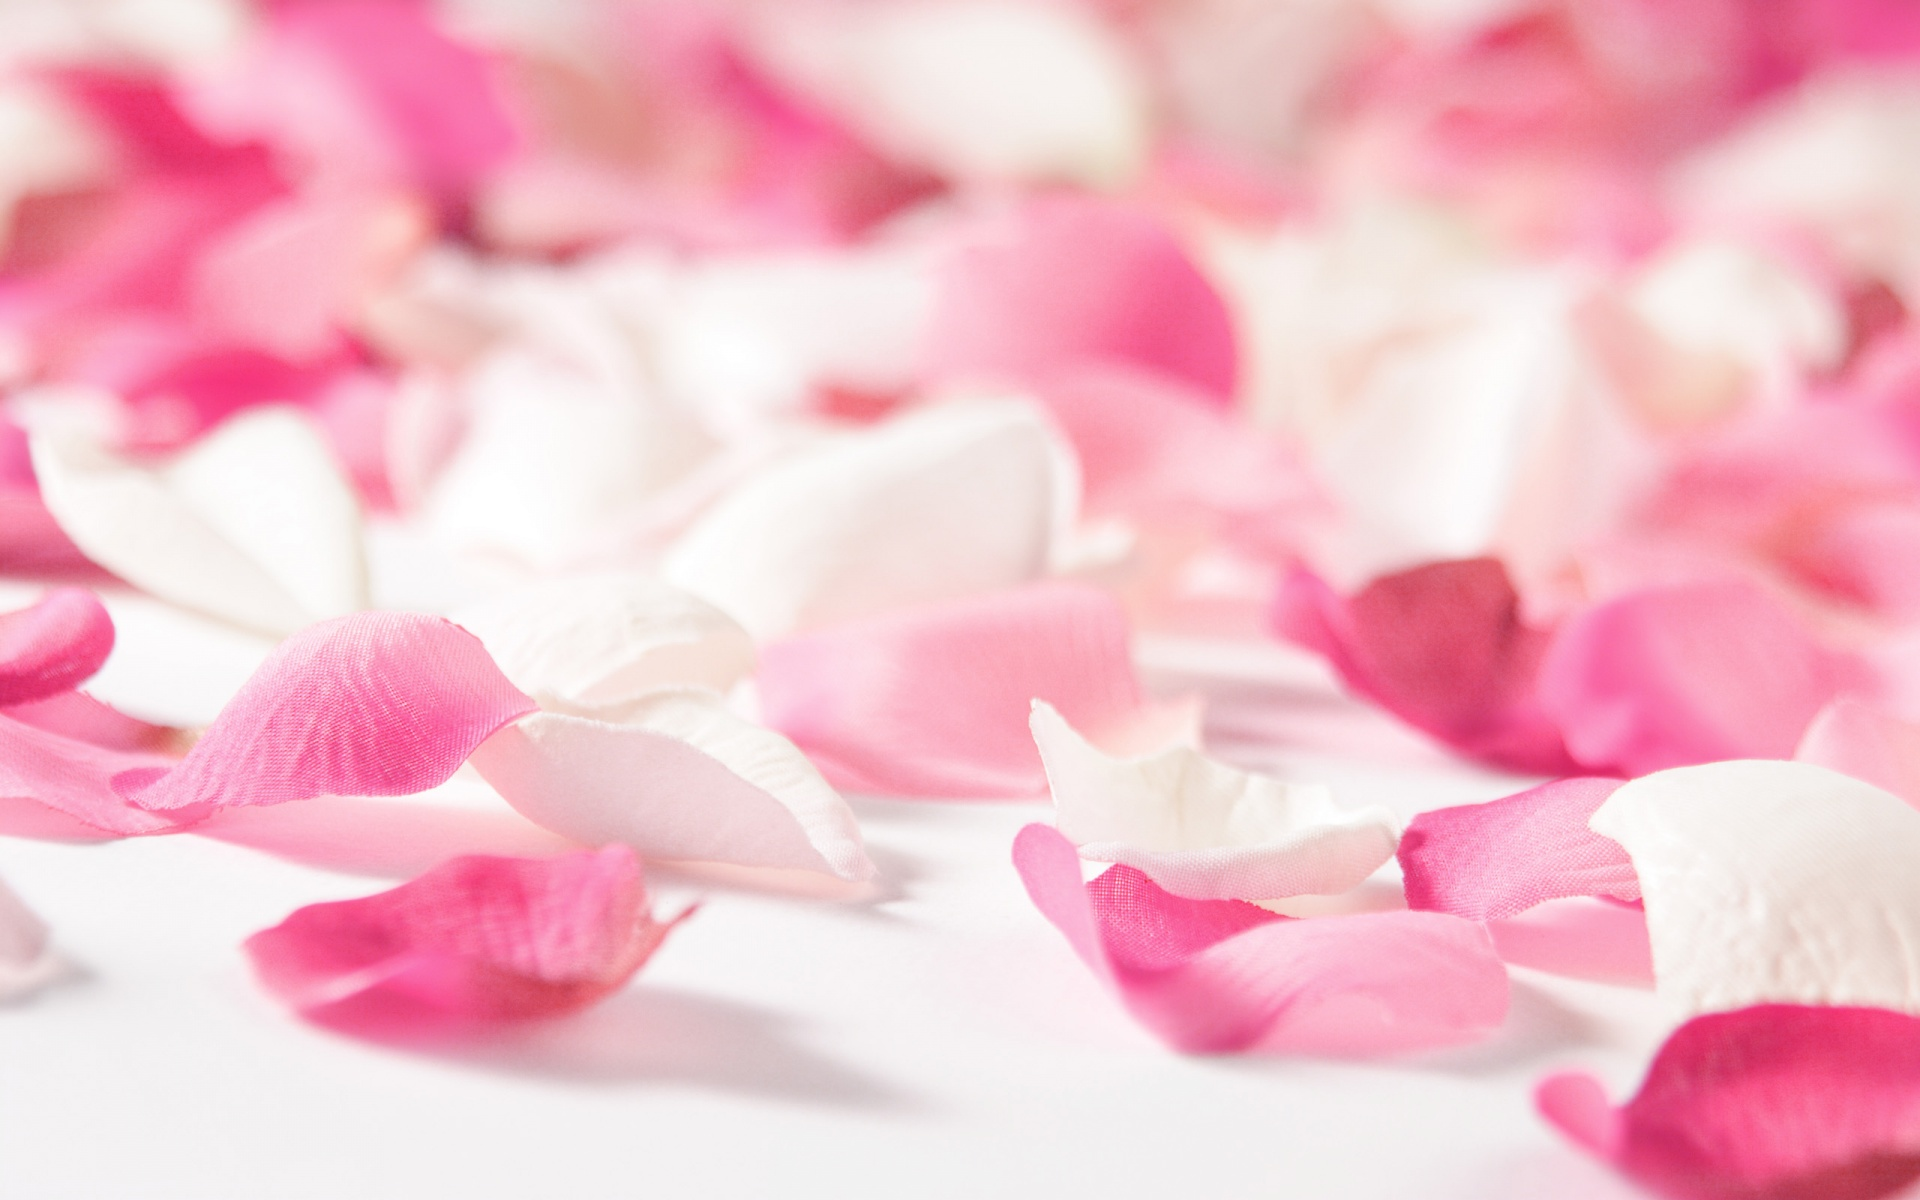 Flowers Flower Petals wallpapers (Desktop, Phone, Tablet) - Awesome ...